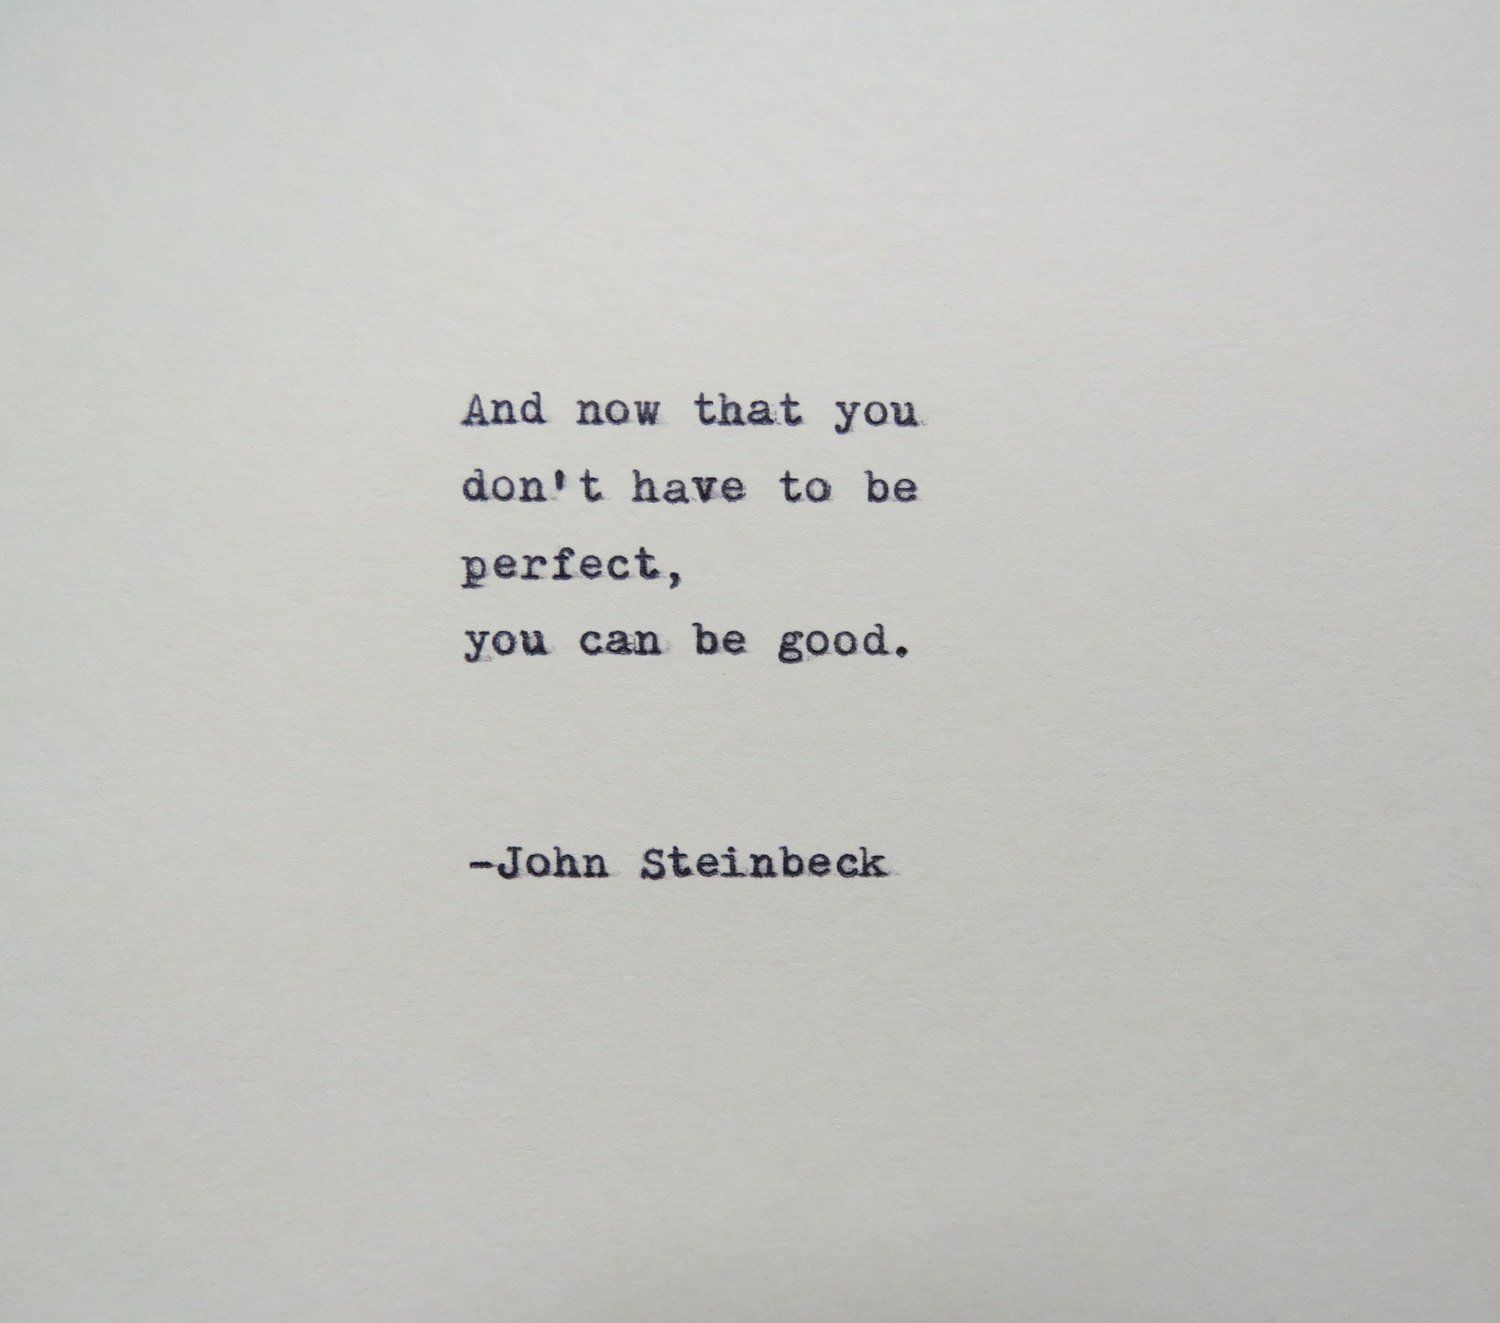 John Steinbeck East of Eden Quote Made on Typewriter | Etsy